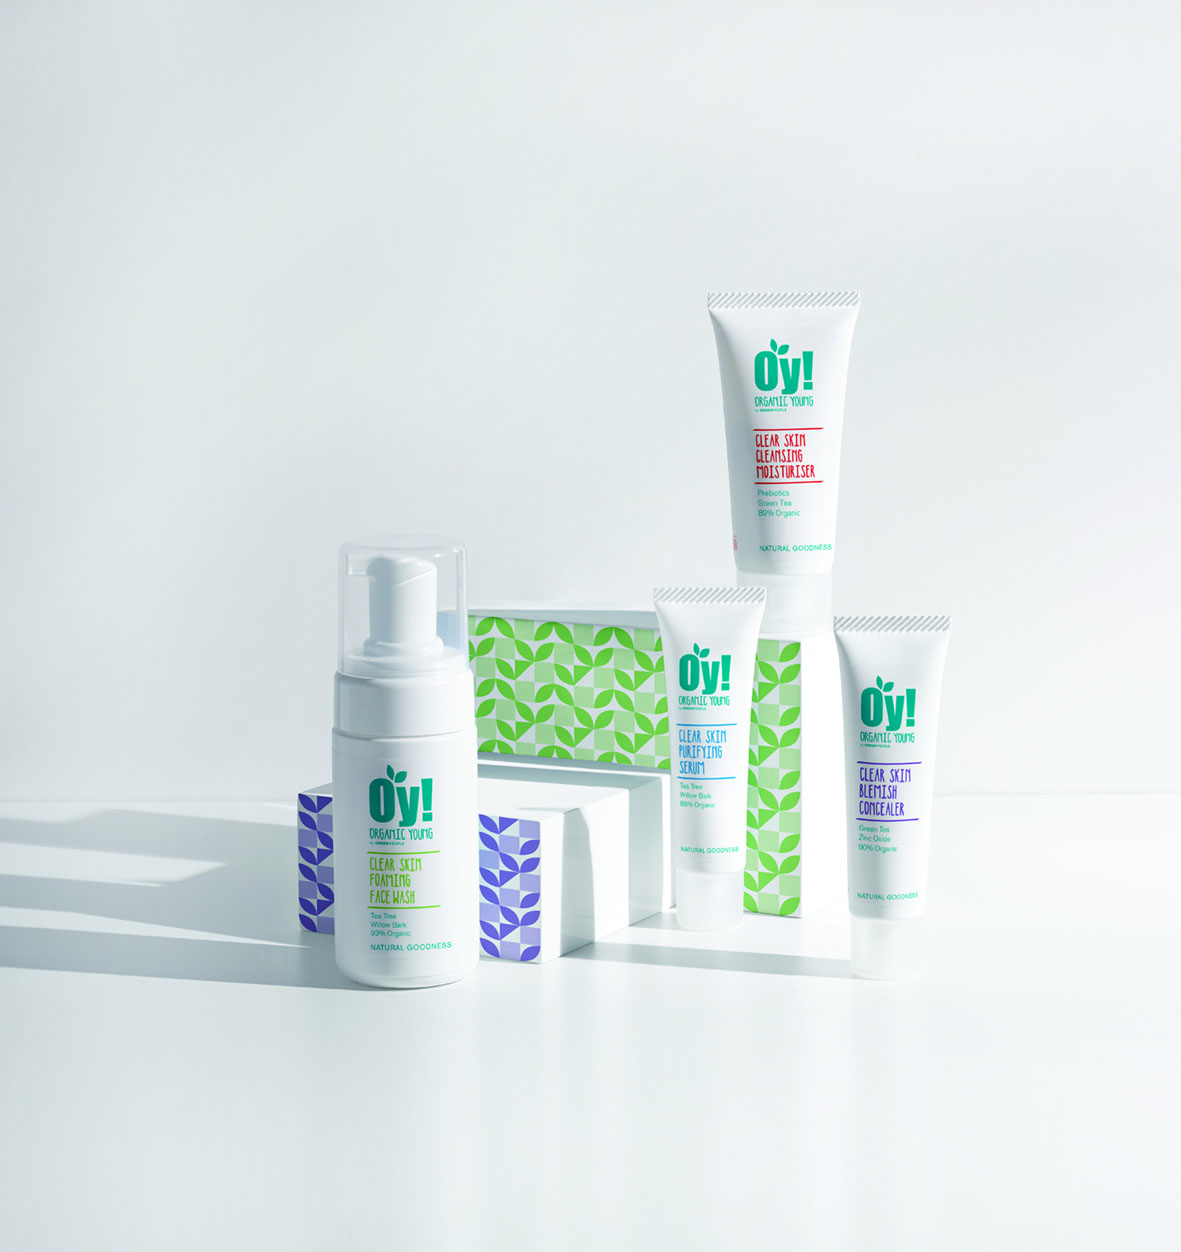 Oy! ethical skincare